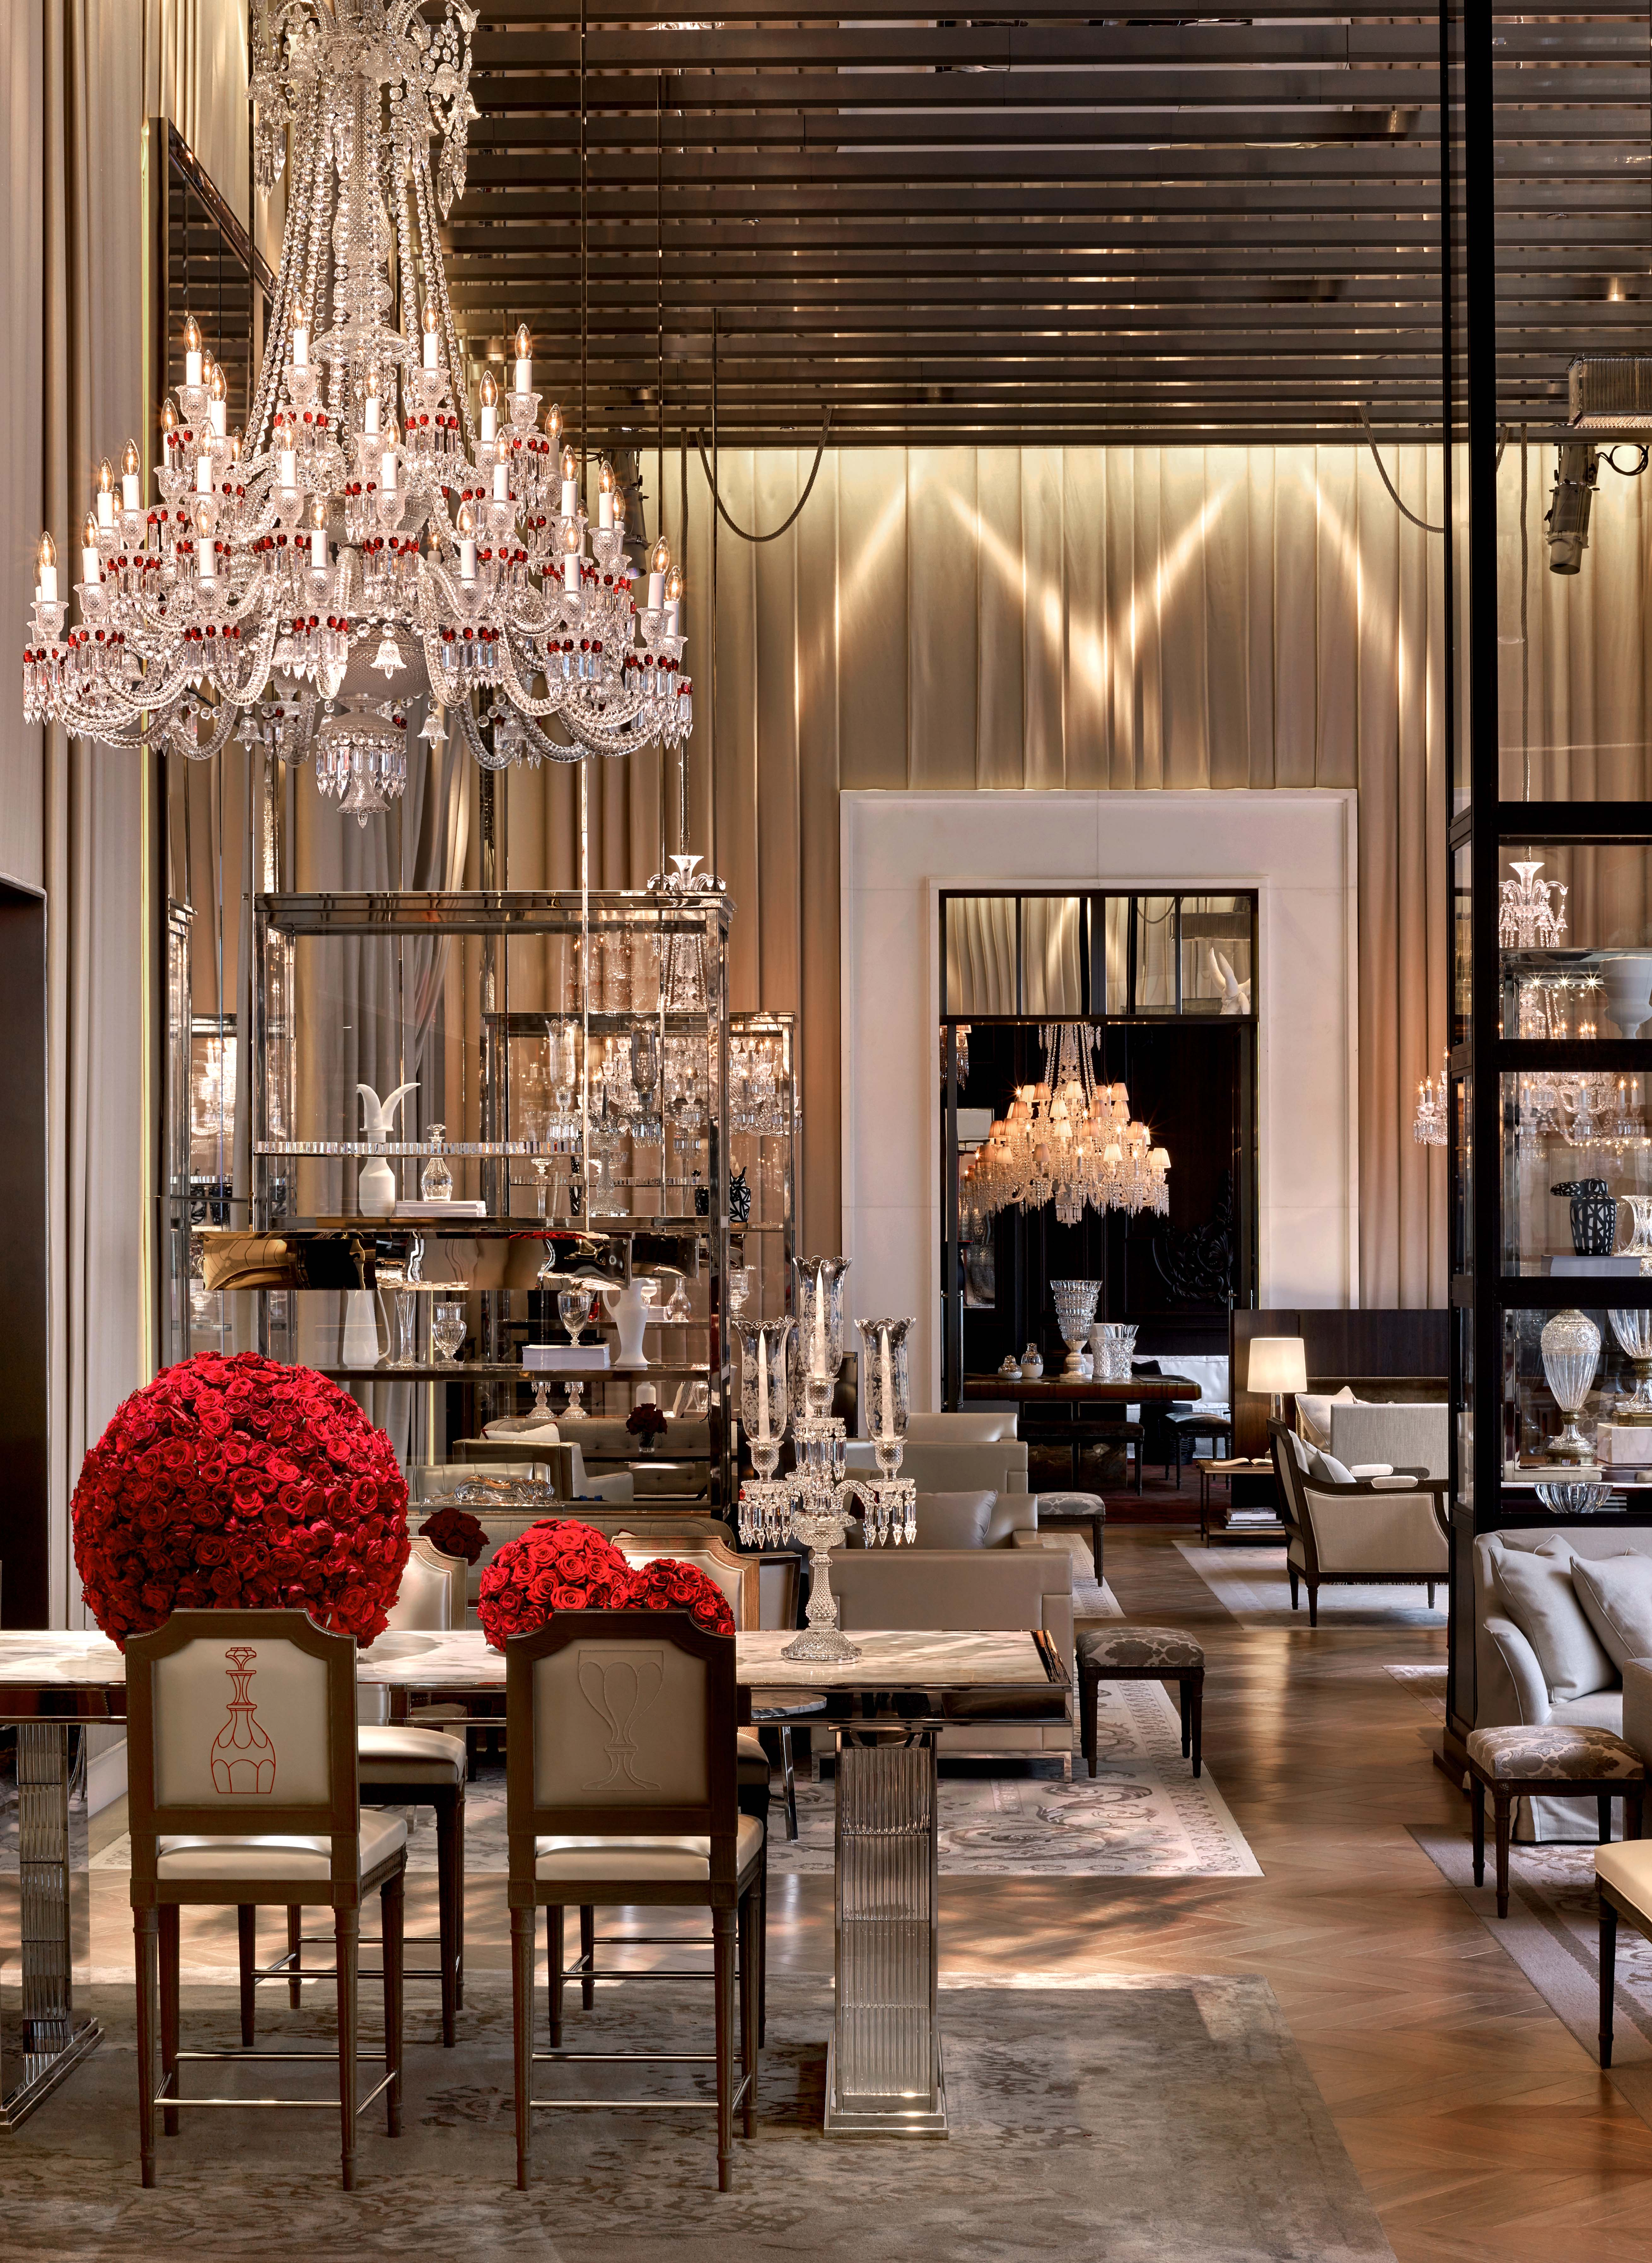 Mary Gostelows Hotel of the Week Baccarat Hotel New York